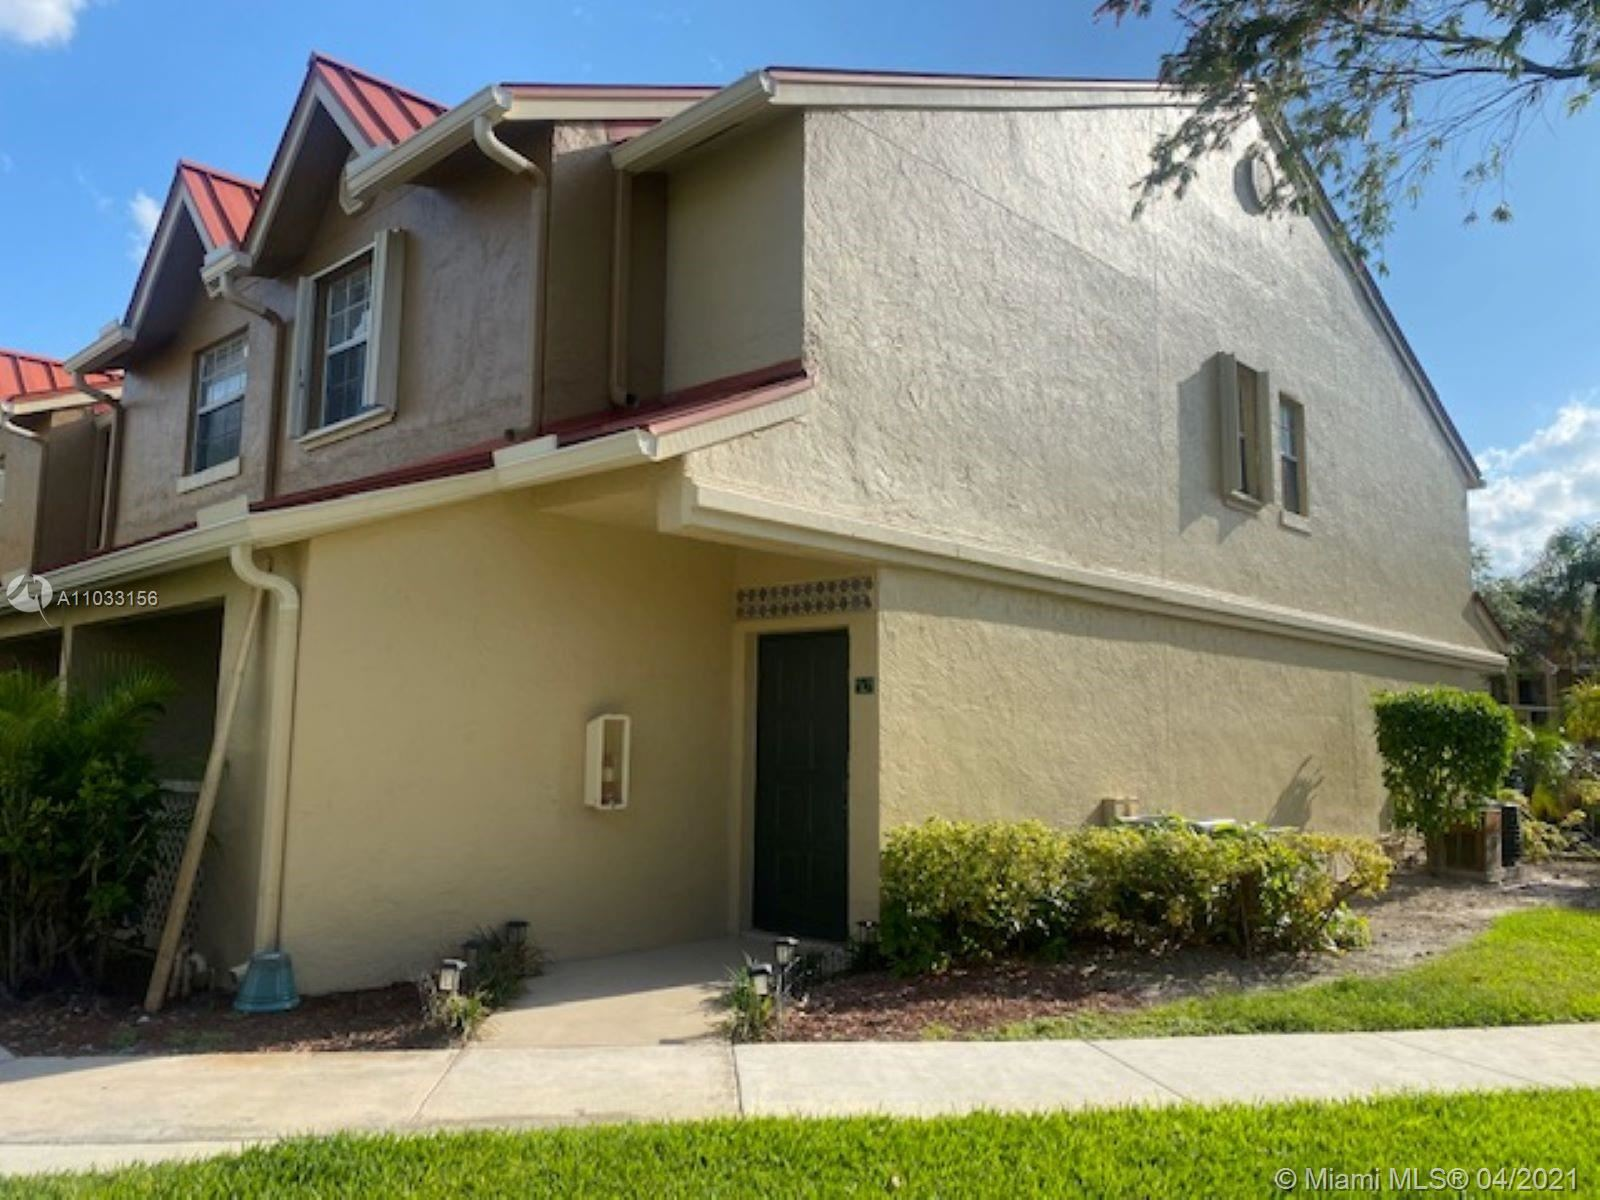 18316 NW 68th Ave #L, Hialeah, FL 33015 - #: A11033156